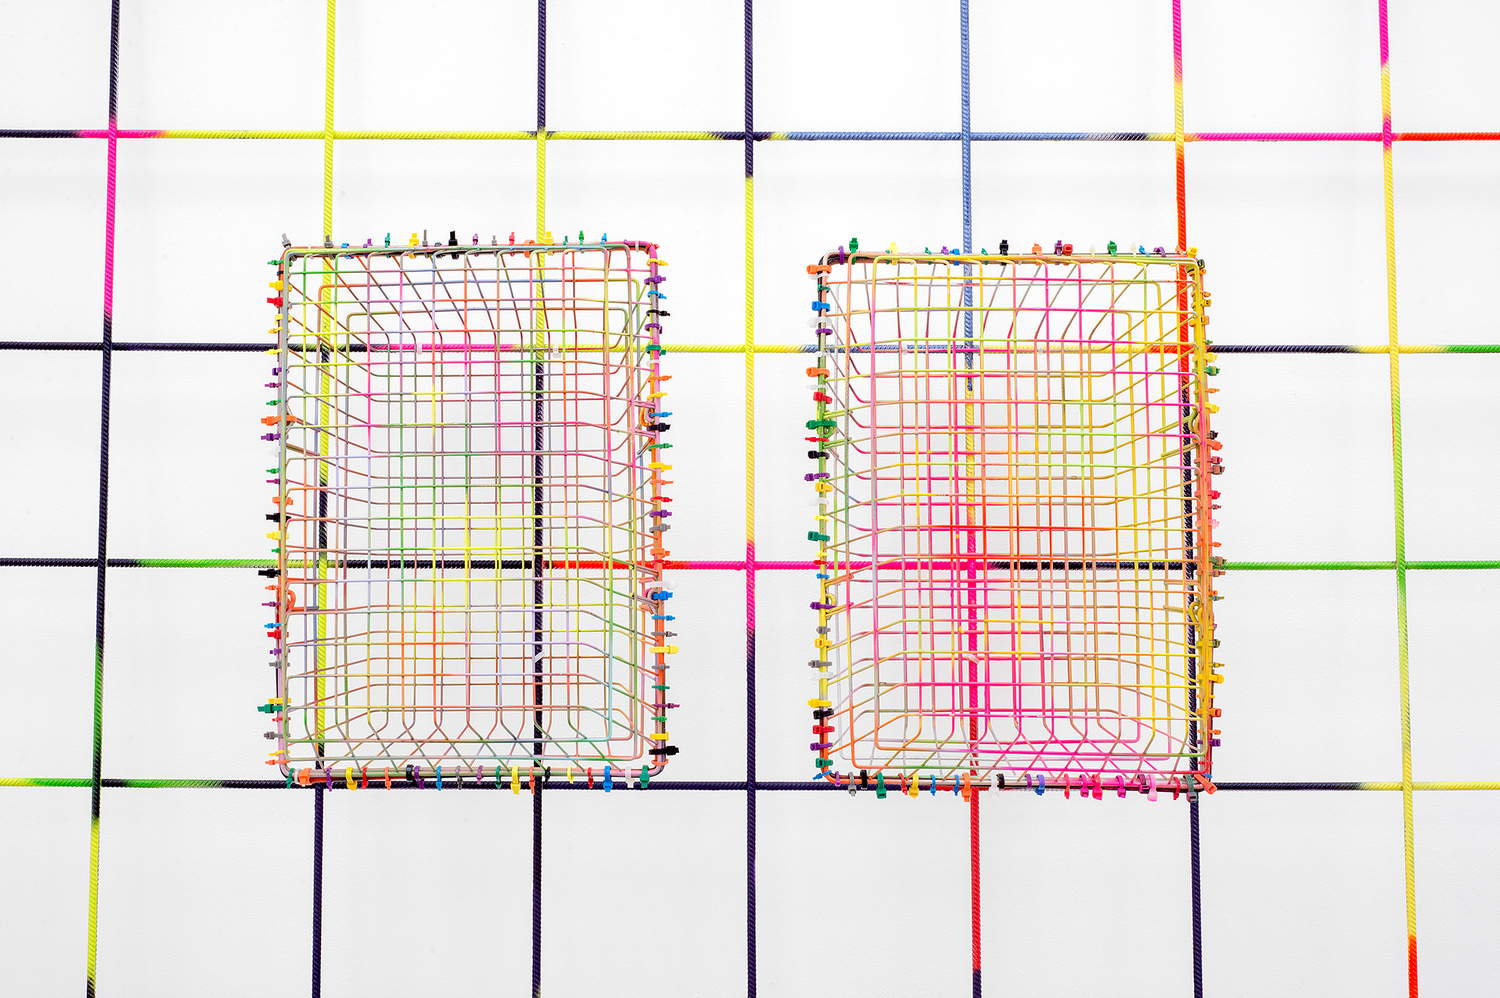 Indian Summer, 2016 (detail), Painted rebar mesh, painted wire baskets, coloured cable ties, 222 x 161 x 39 cm, 87.4 x 63.4 x 15.4 in